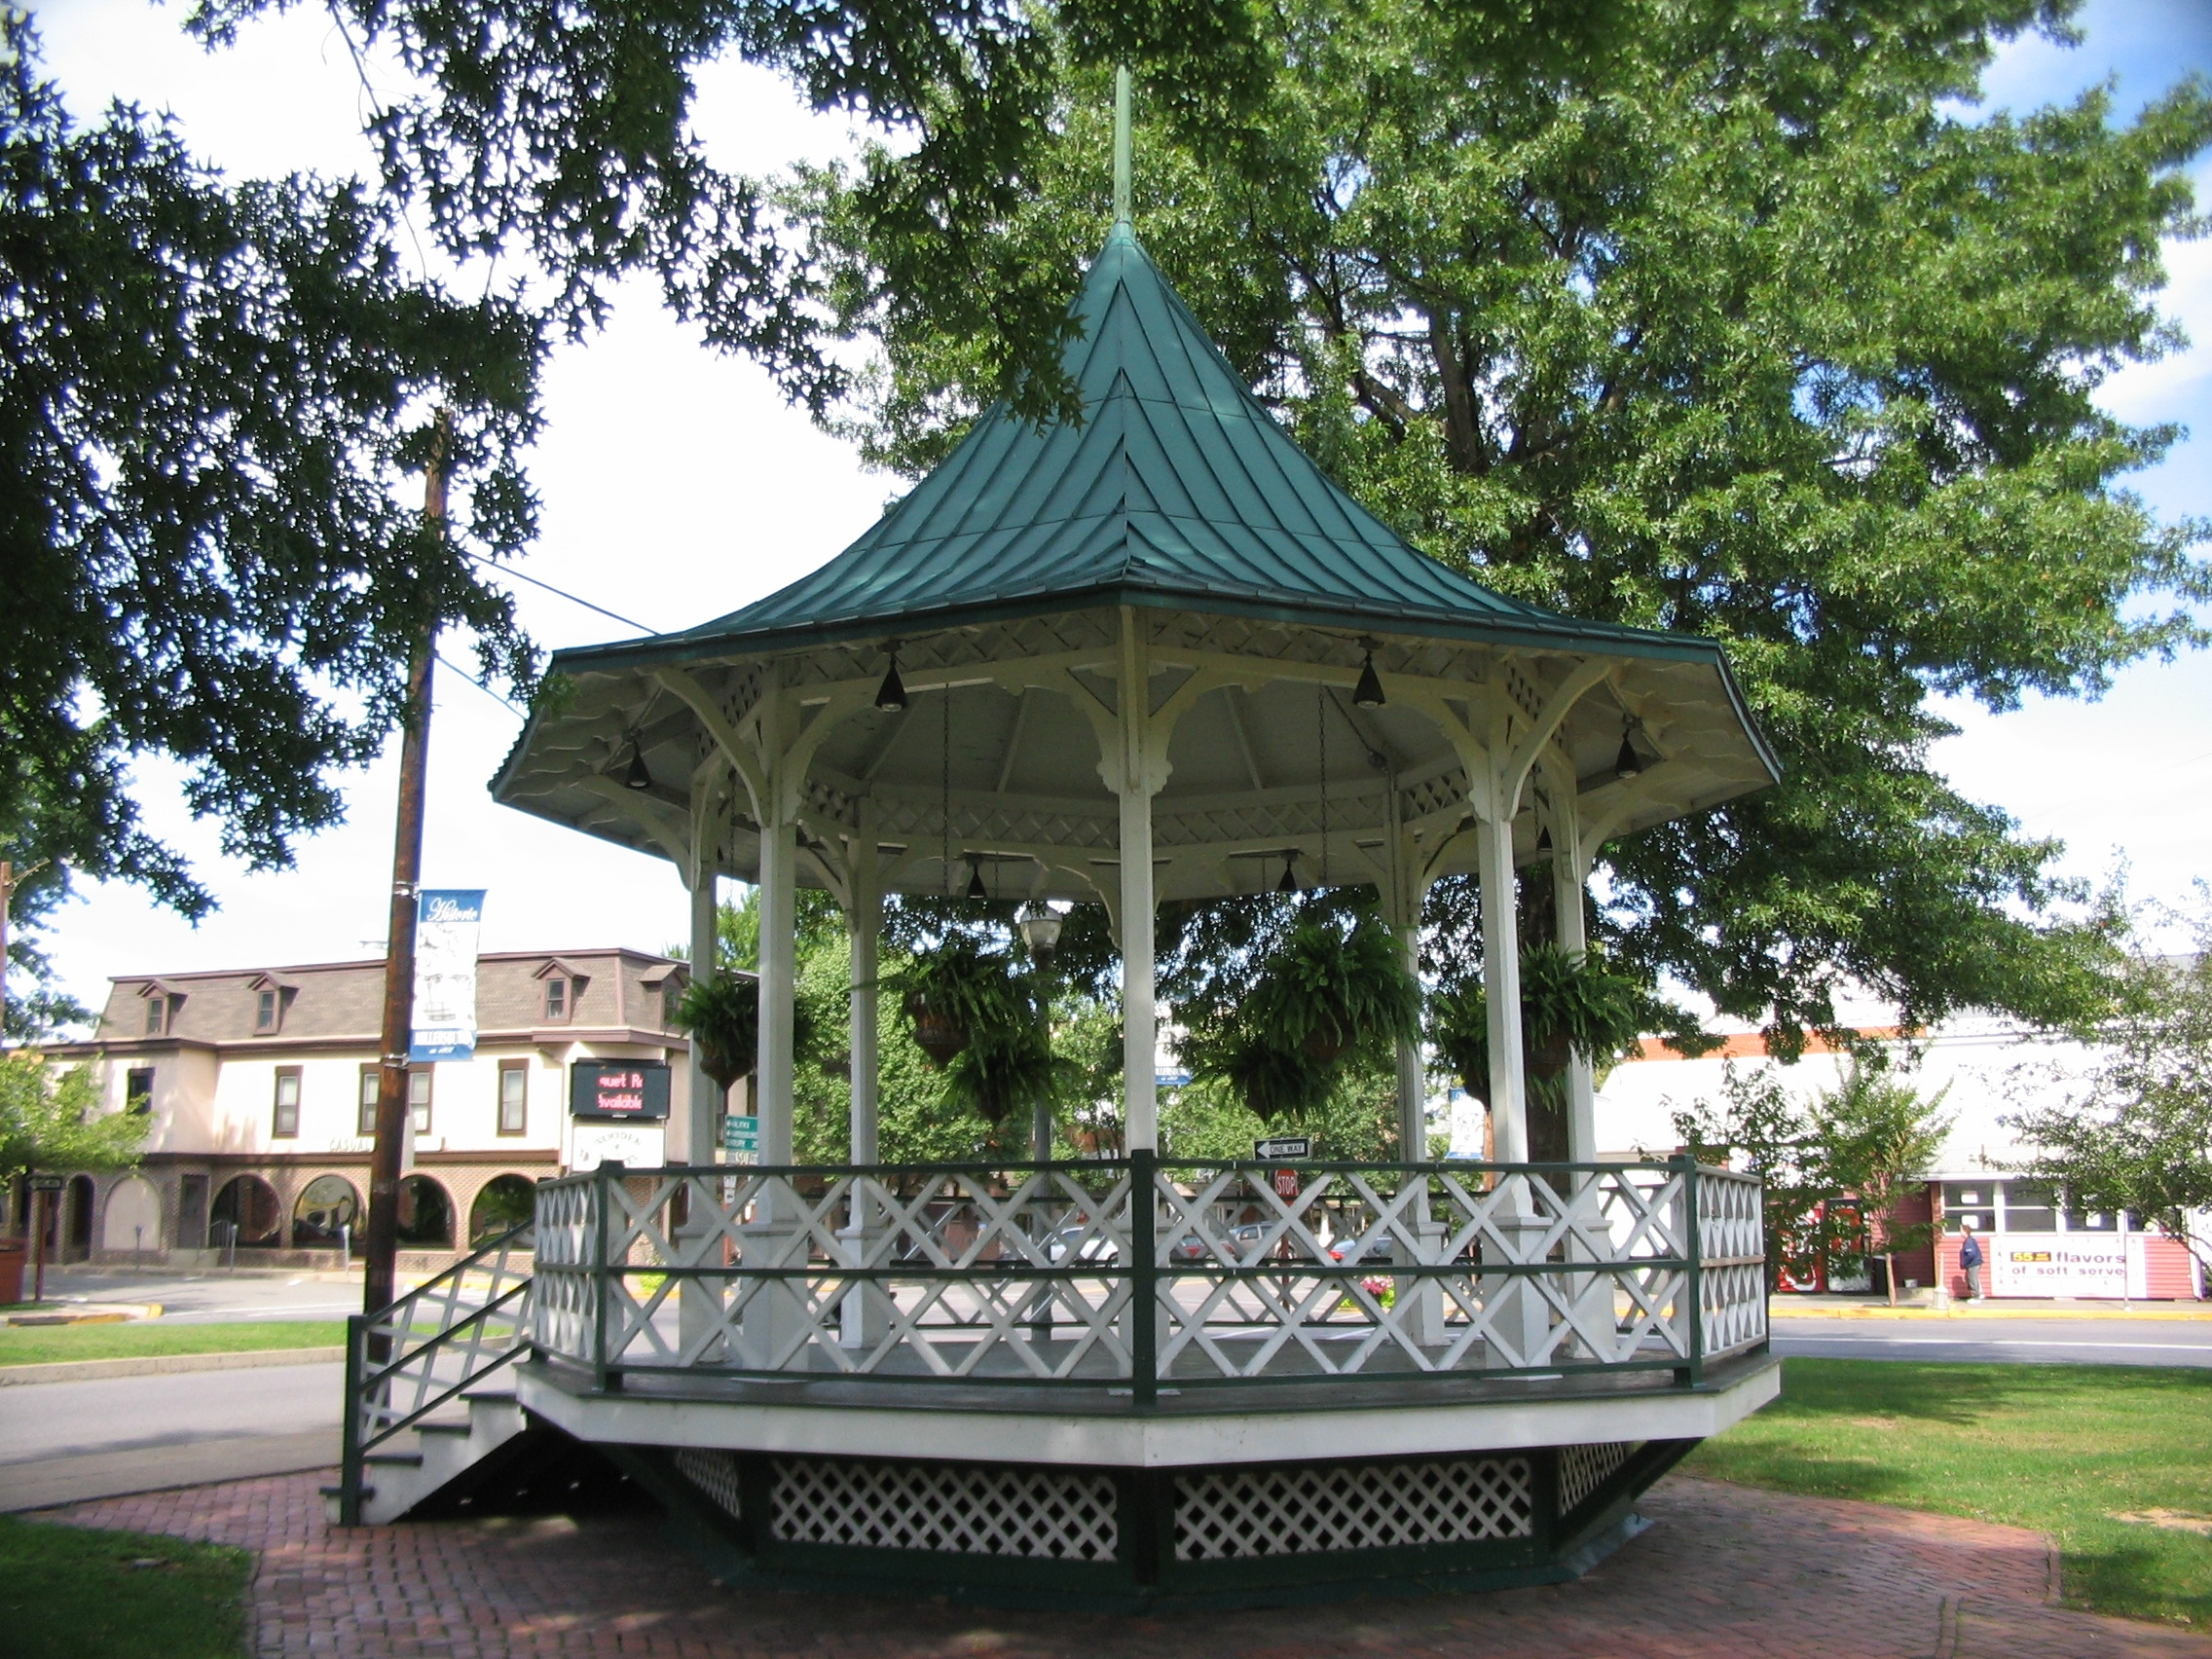 The Music Pavilion / Gazebo